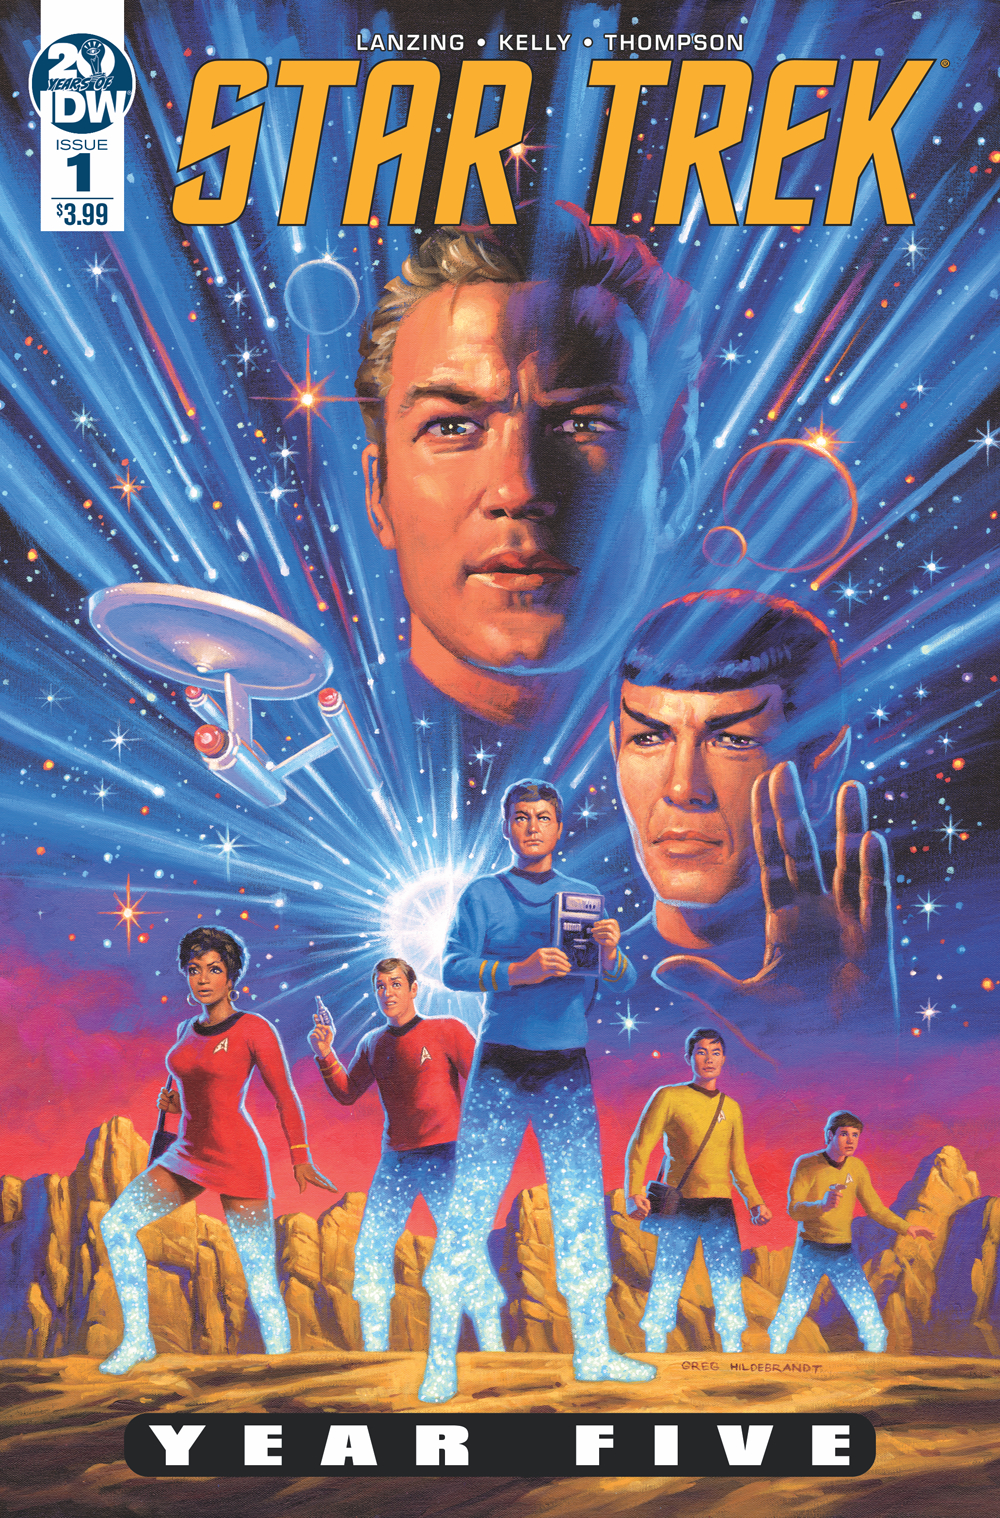 STAR TREK YEAR FIVE #1 HILDABRANDT